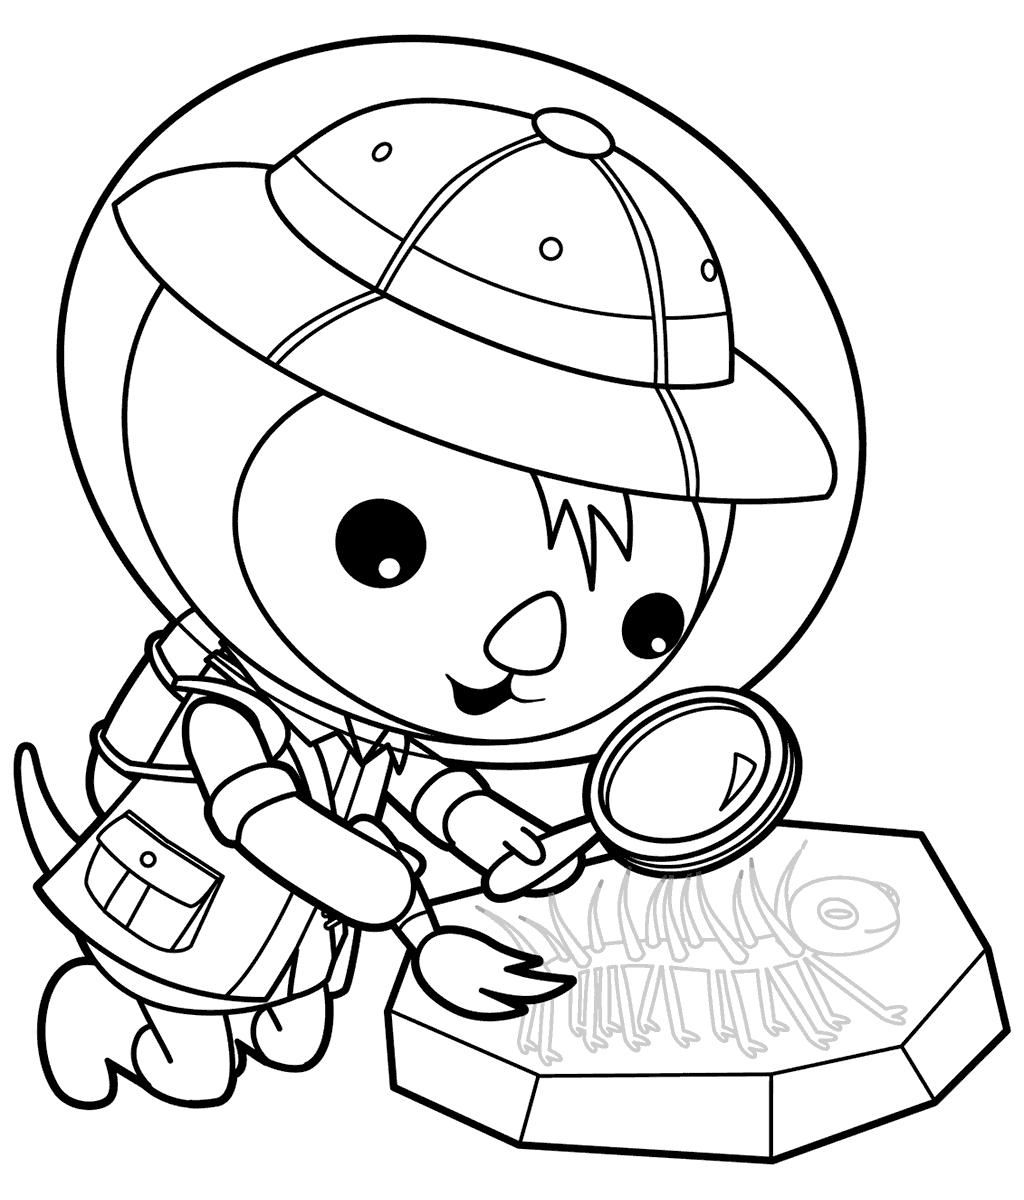 Octonauts Coloring Pages Free Http Www Wallpaperartdesignhd Us Octonauts Coloring Pages Free 4625 Coloring Pages Coloring Pages For Kids Shark Coloring Pages